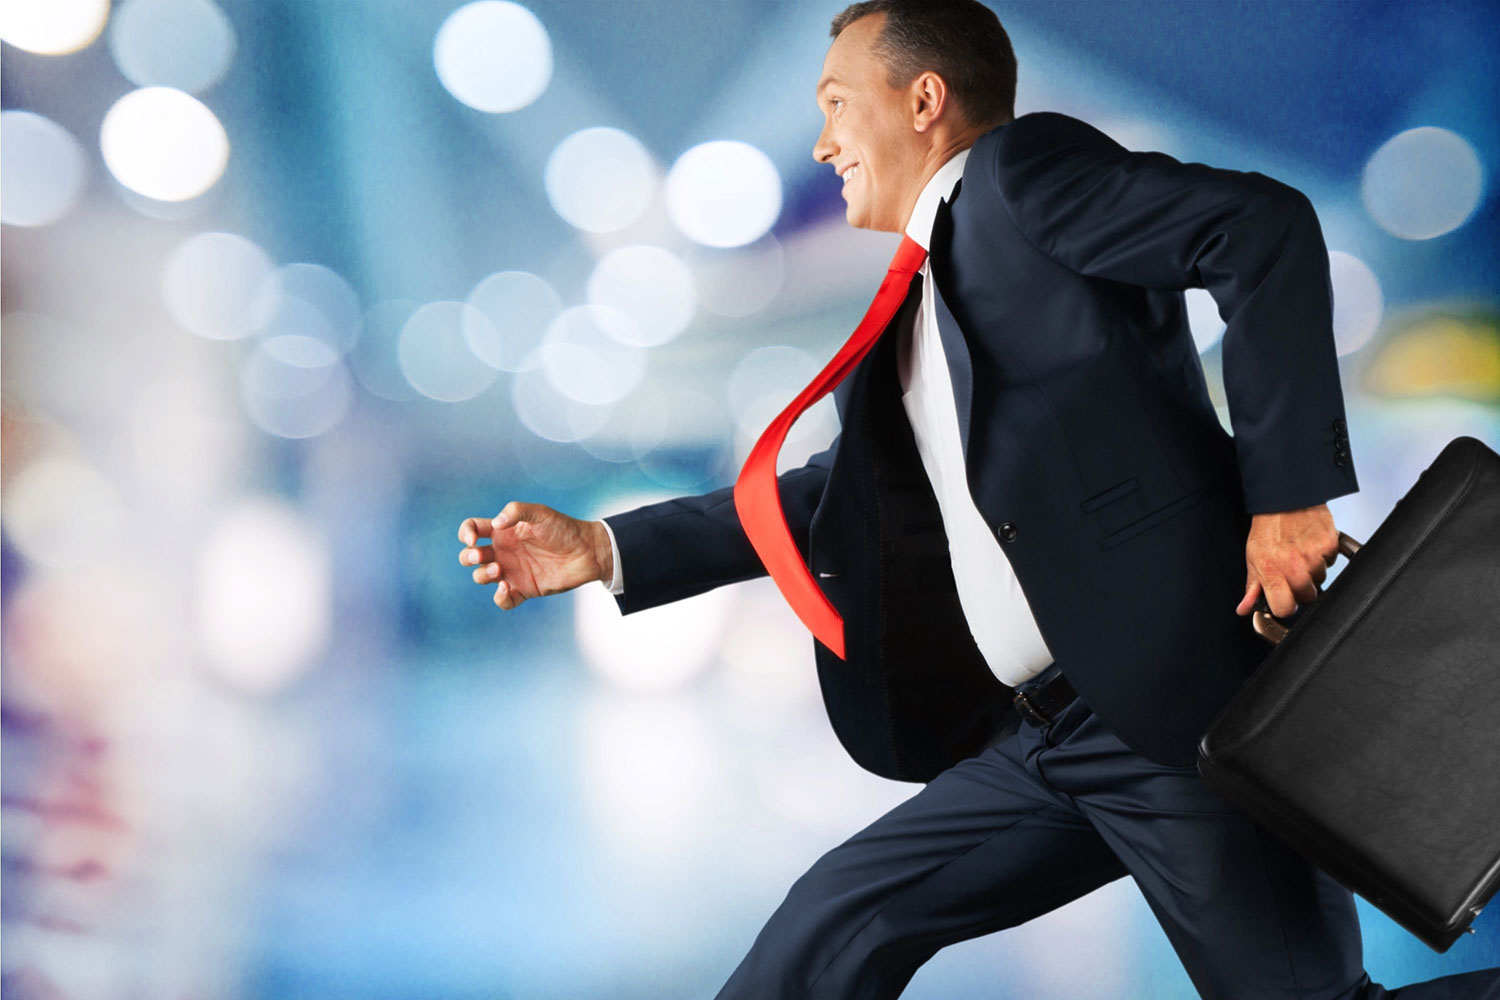 business_man_running